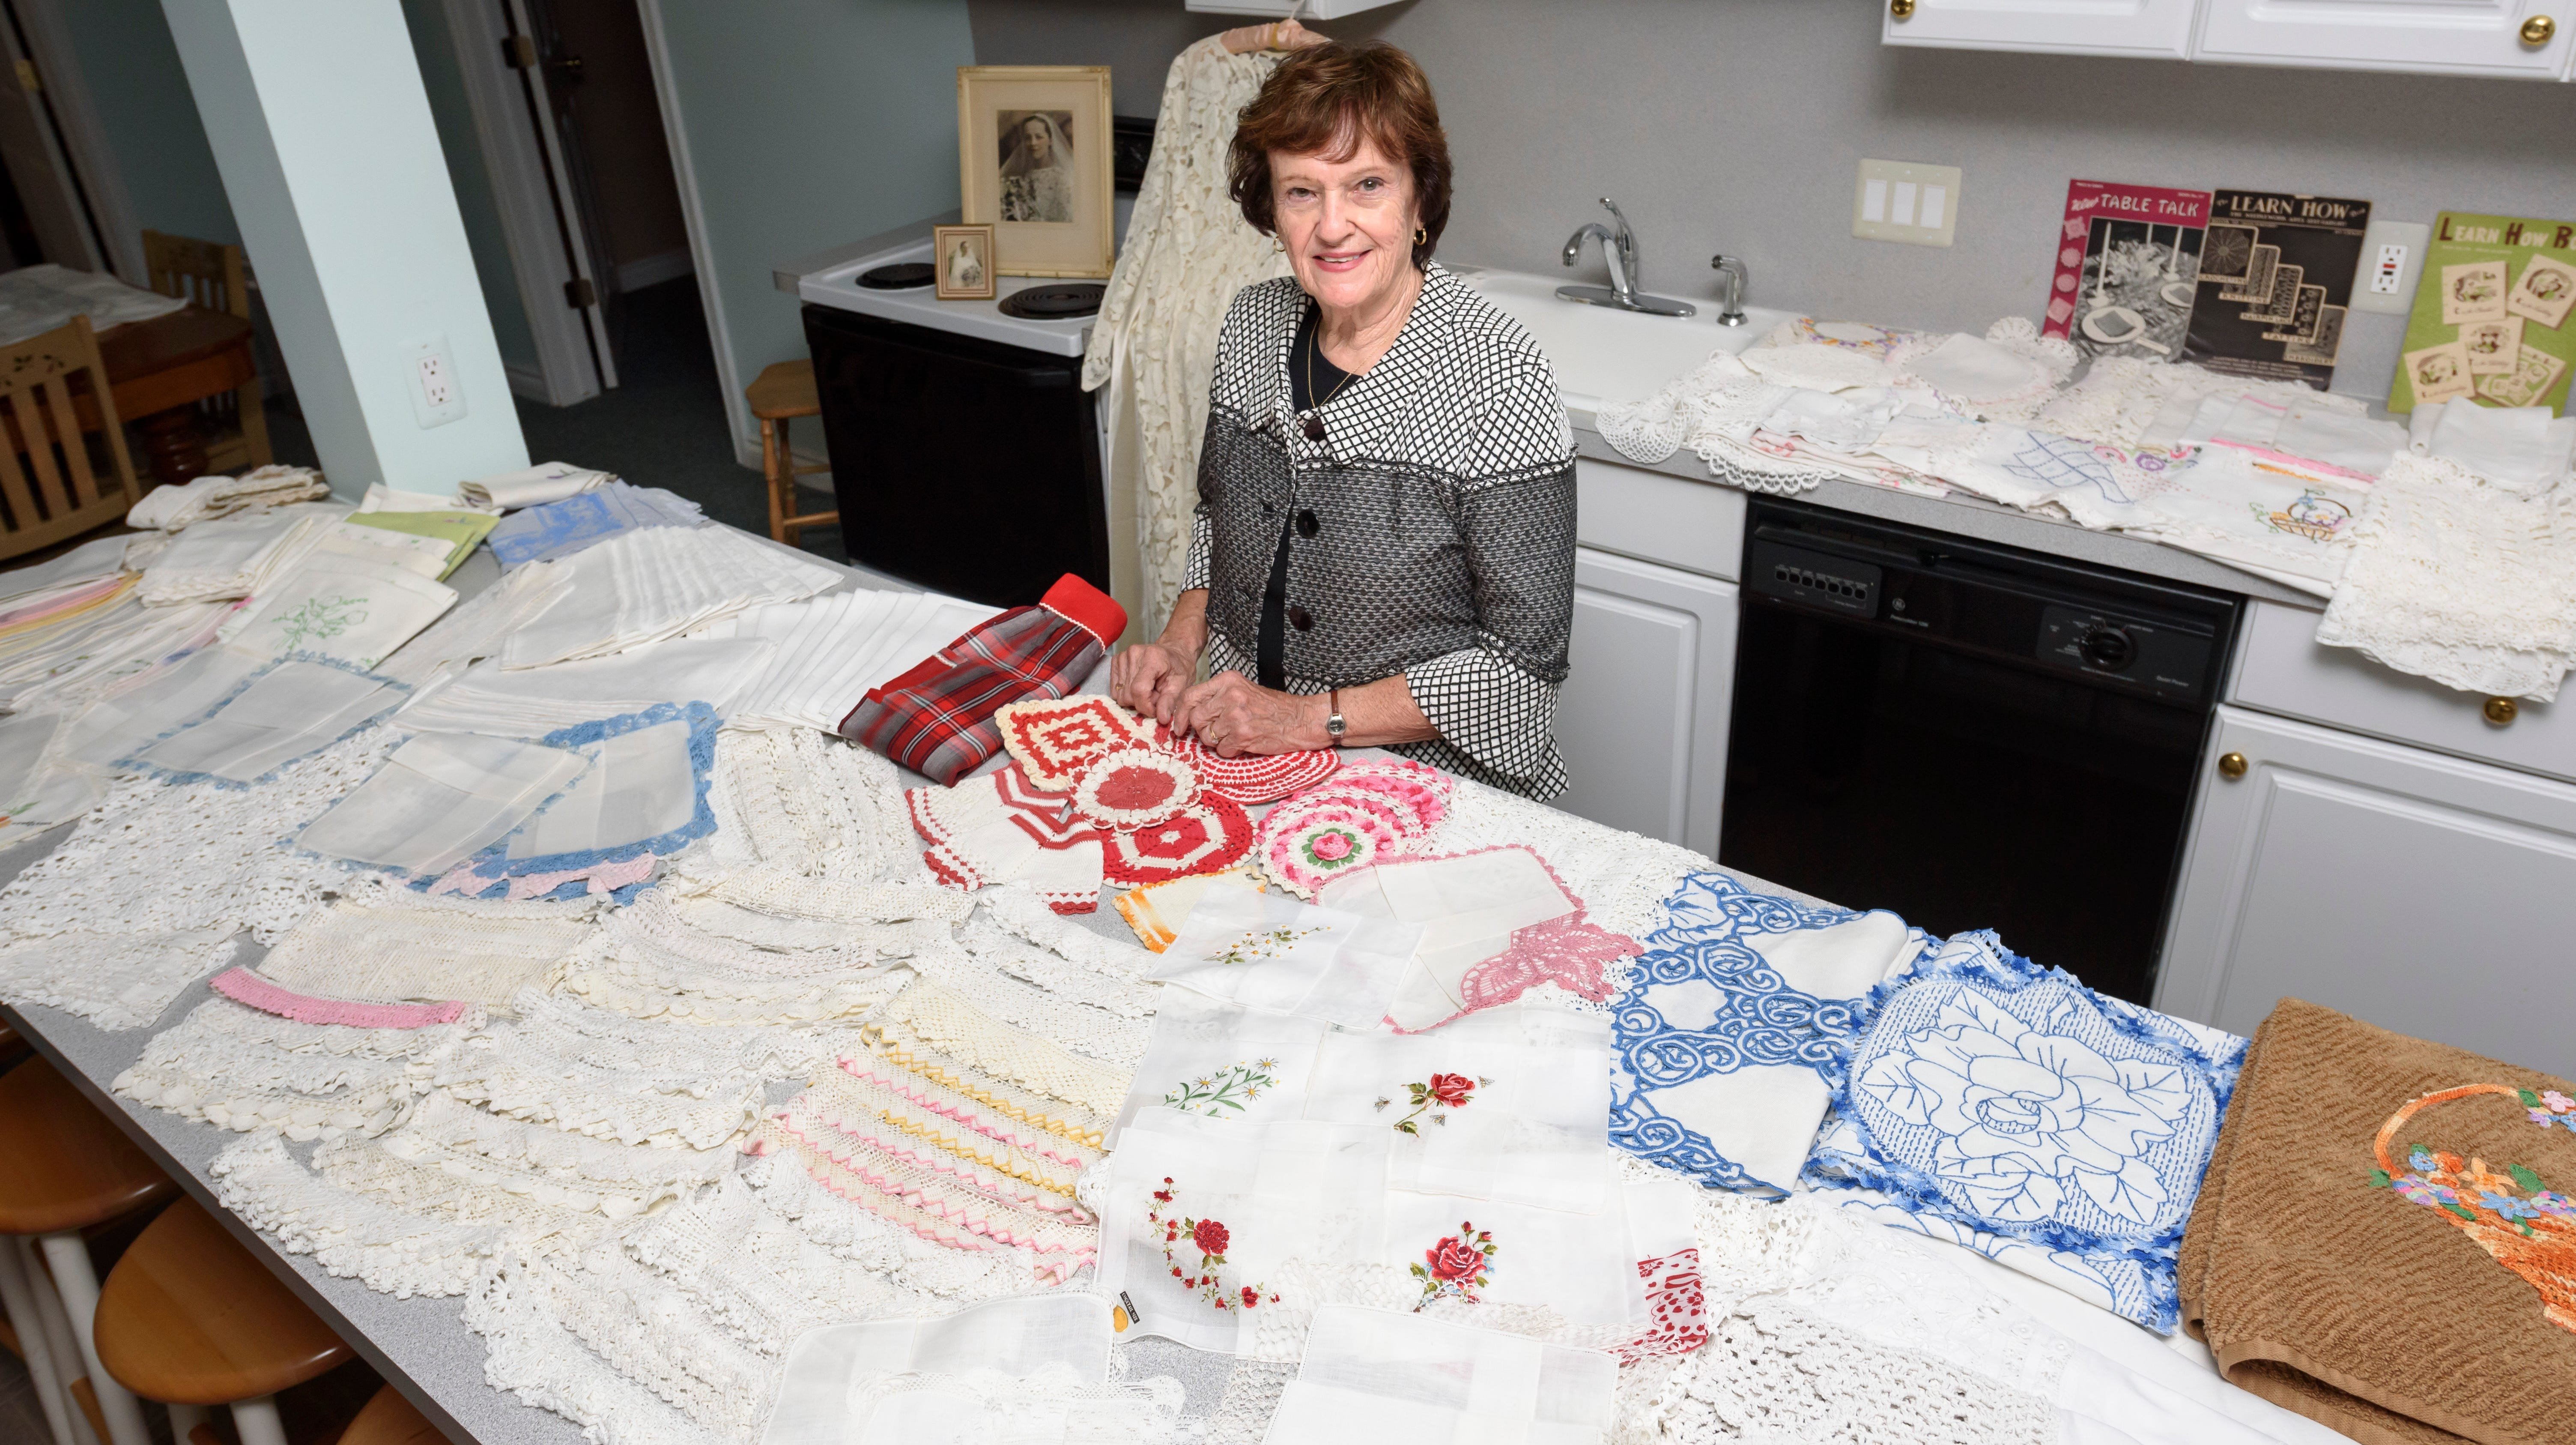 Handmade: Downsizing and letting go of family heirlooms